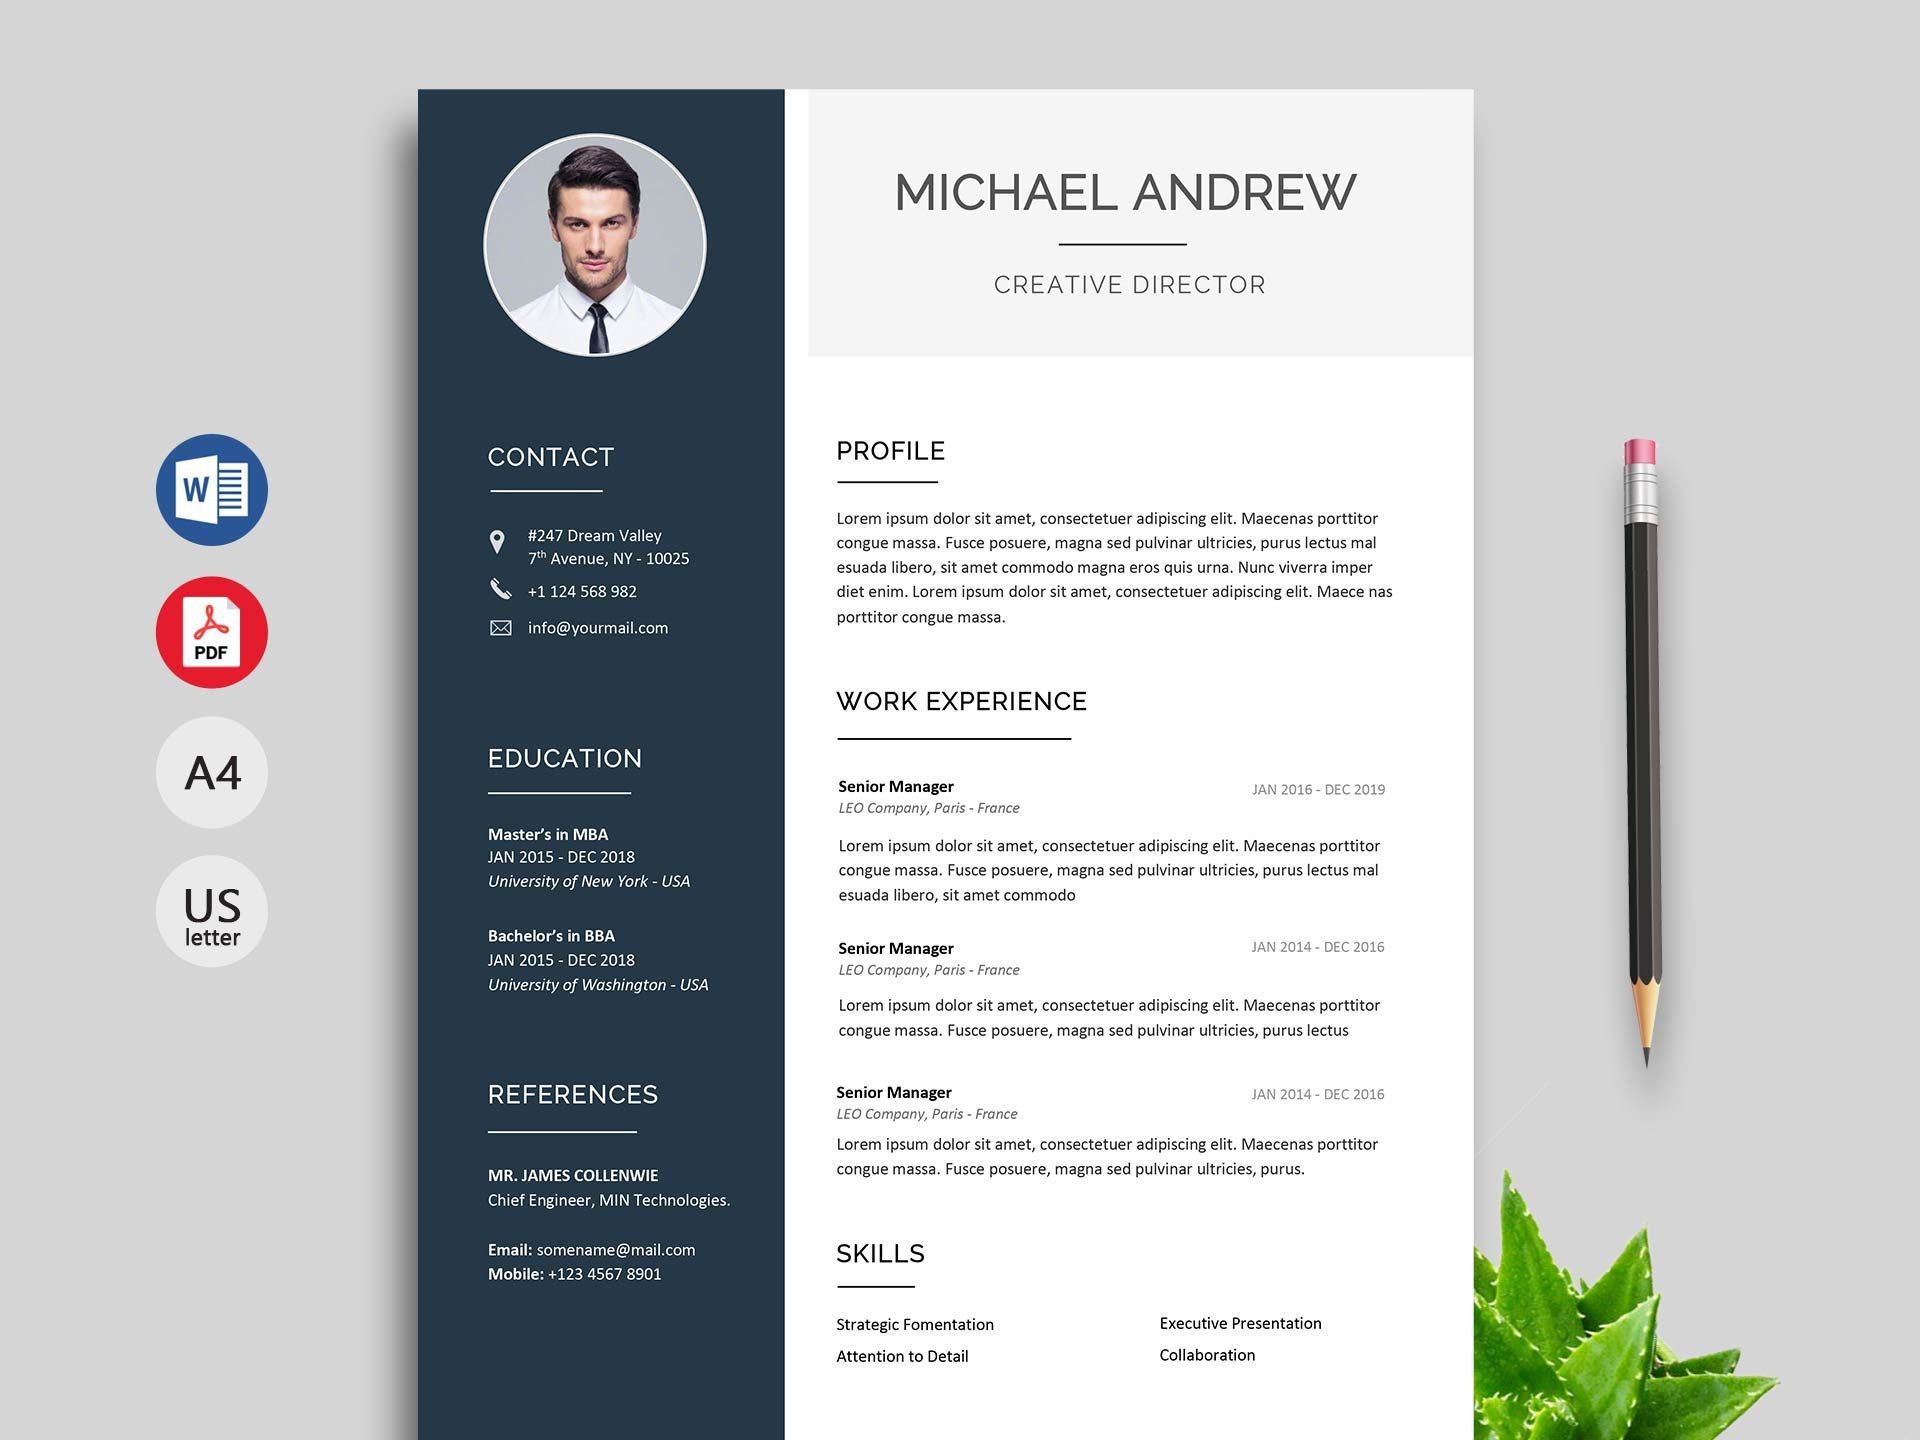 007 Awful Professional Resume Template Free Download Word High Resolution  Cv 2020 Format With Photo1920